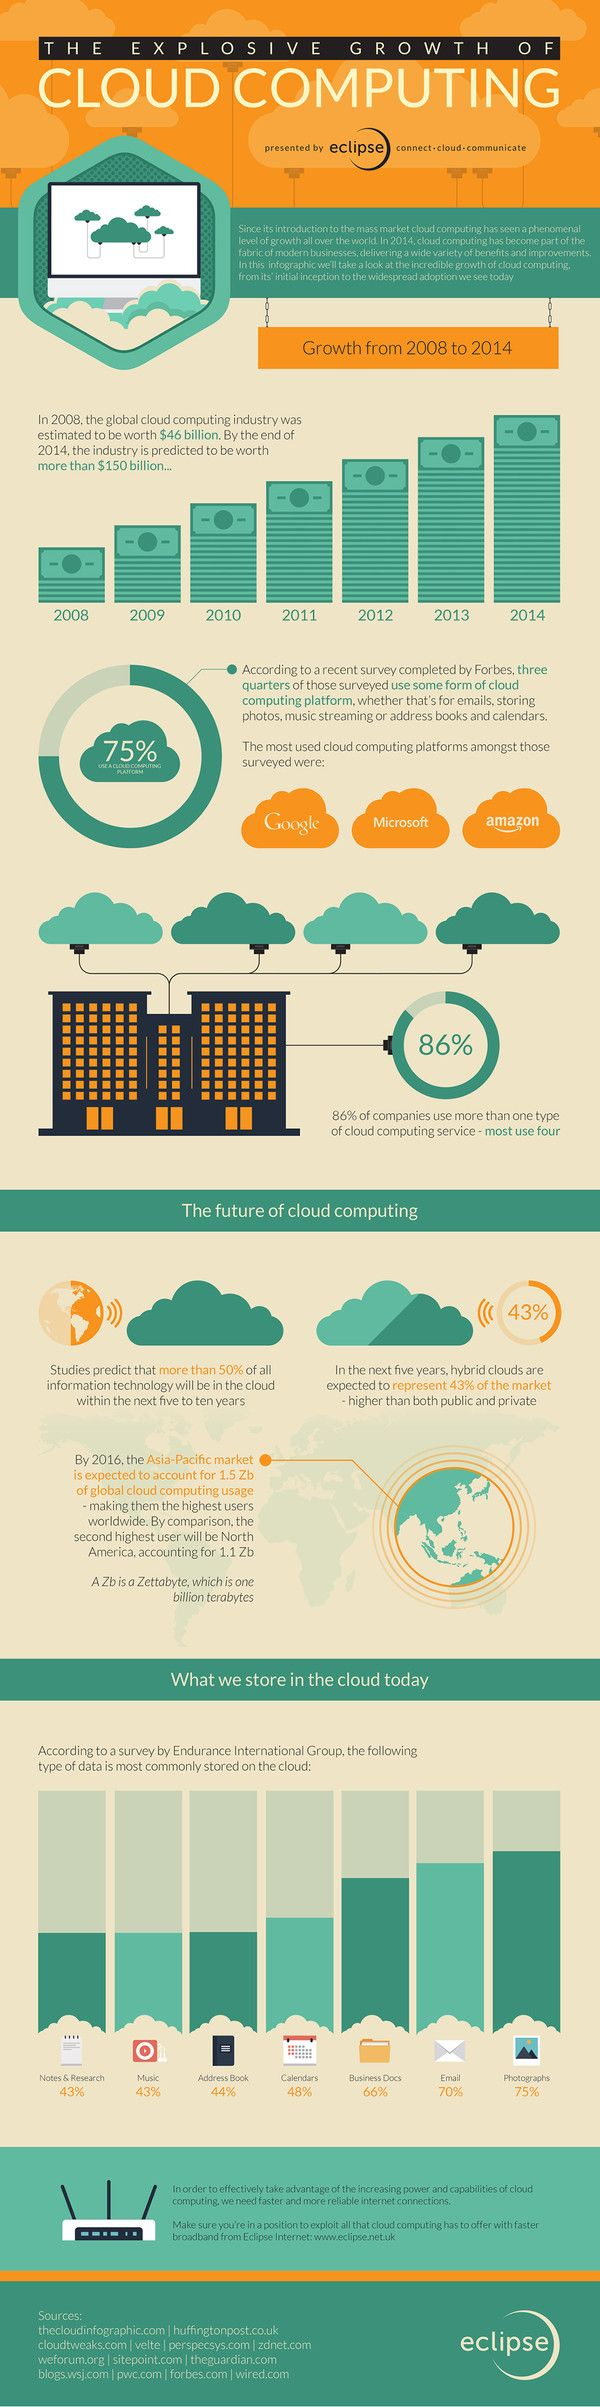 The Explosive Growth of Cloud Computing [INFOGRAPHIC]  In 2008 the cloud computing industry was estimated to be worth $46 billion and in 2014 it is estimated to be worth more than $150 billion. Check out why: